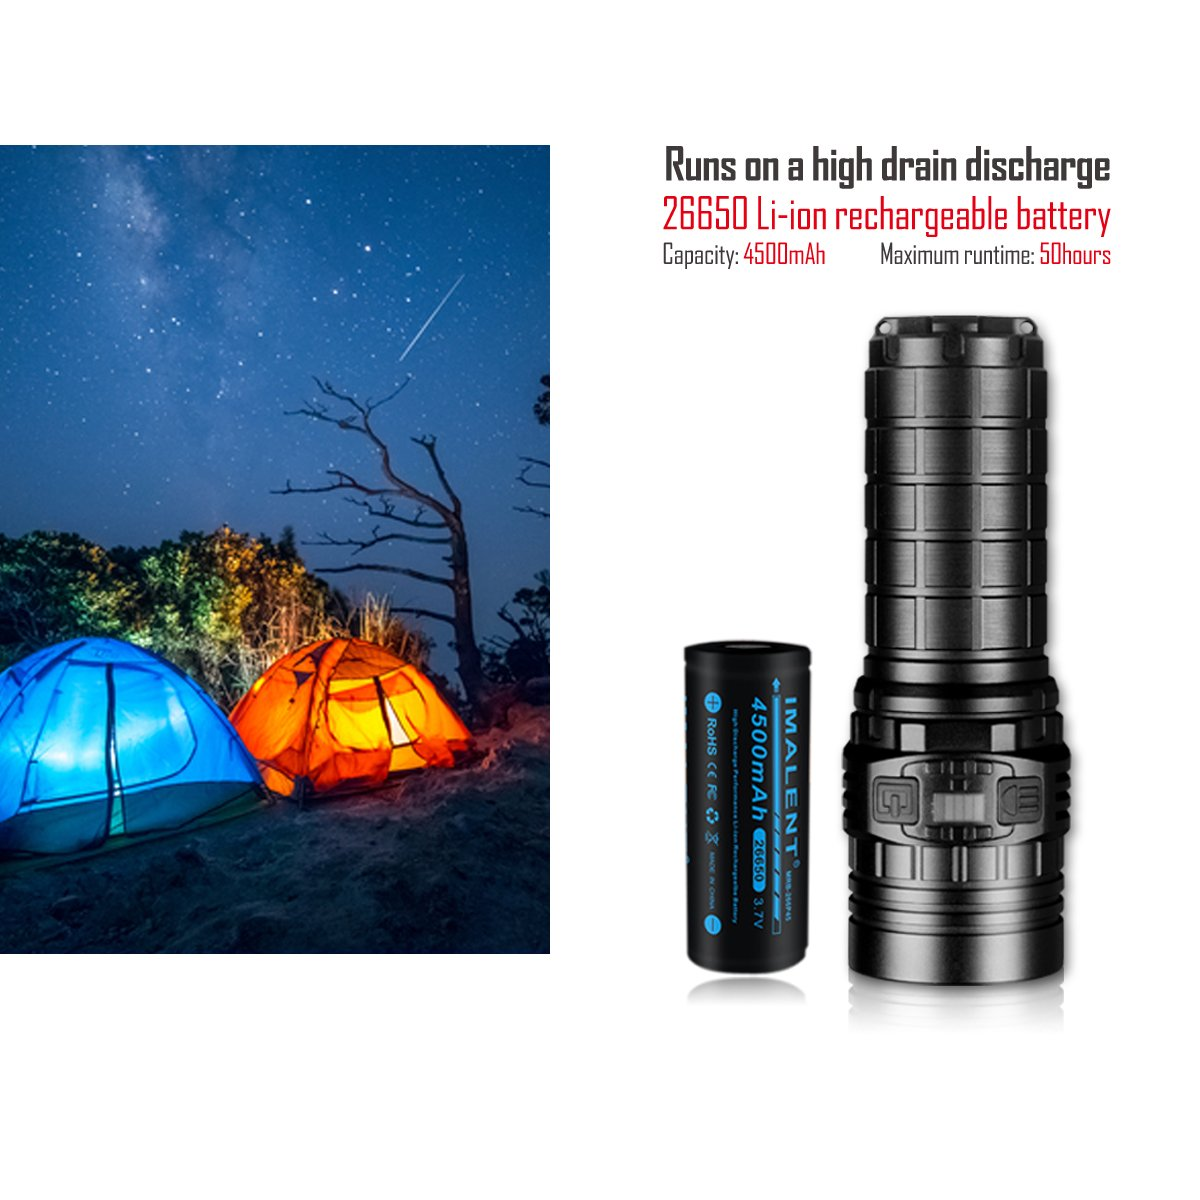 Imalent new DN70 USB rechargeable palm-sized LED flashlight 3800lumens searching light portable floody flashlight with CREE XHP70 LED by IMALENT (Image #2)